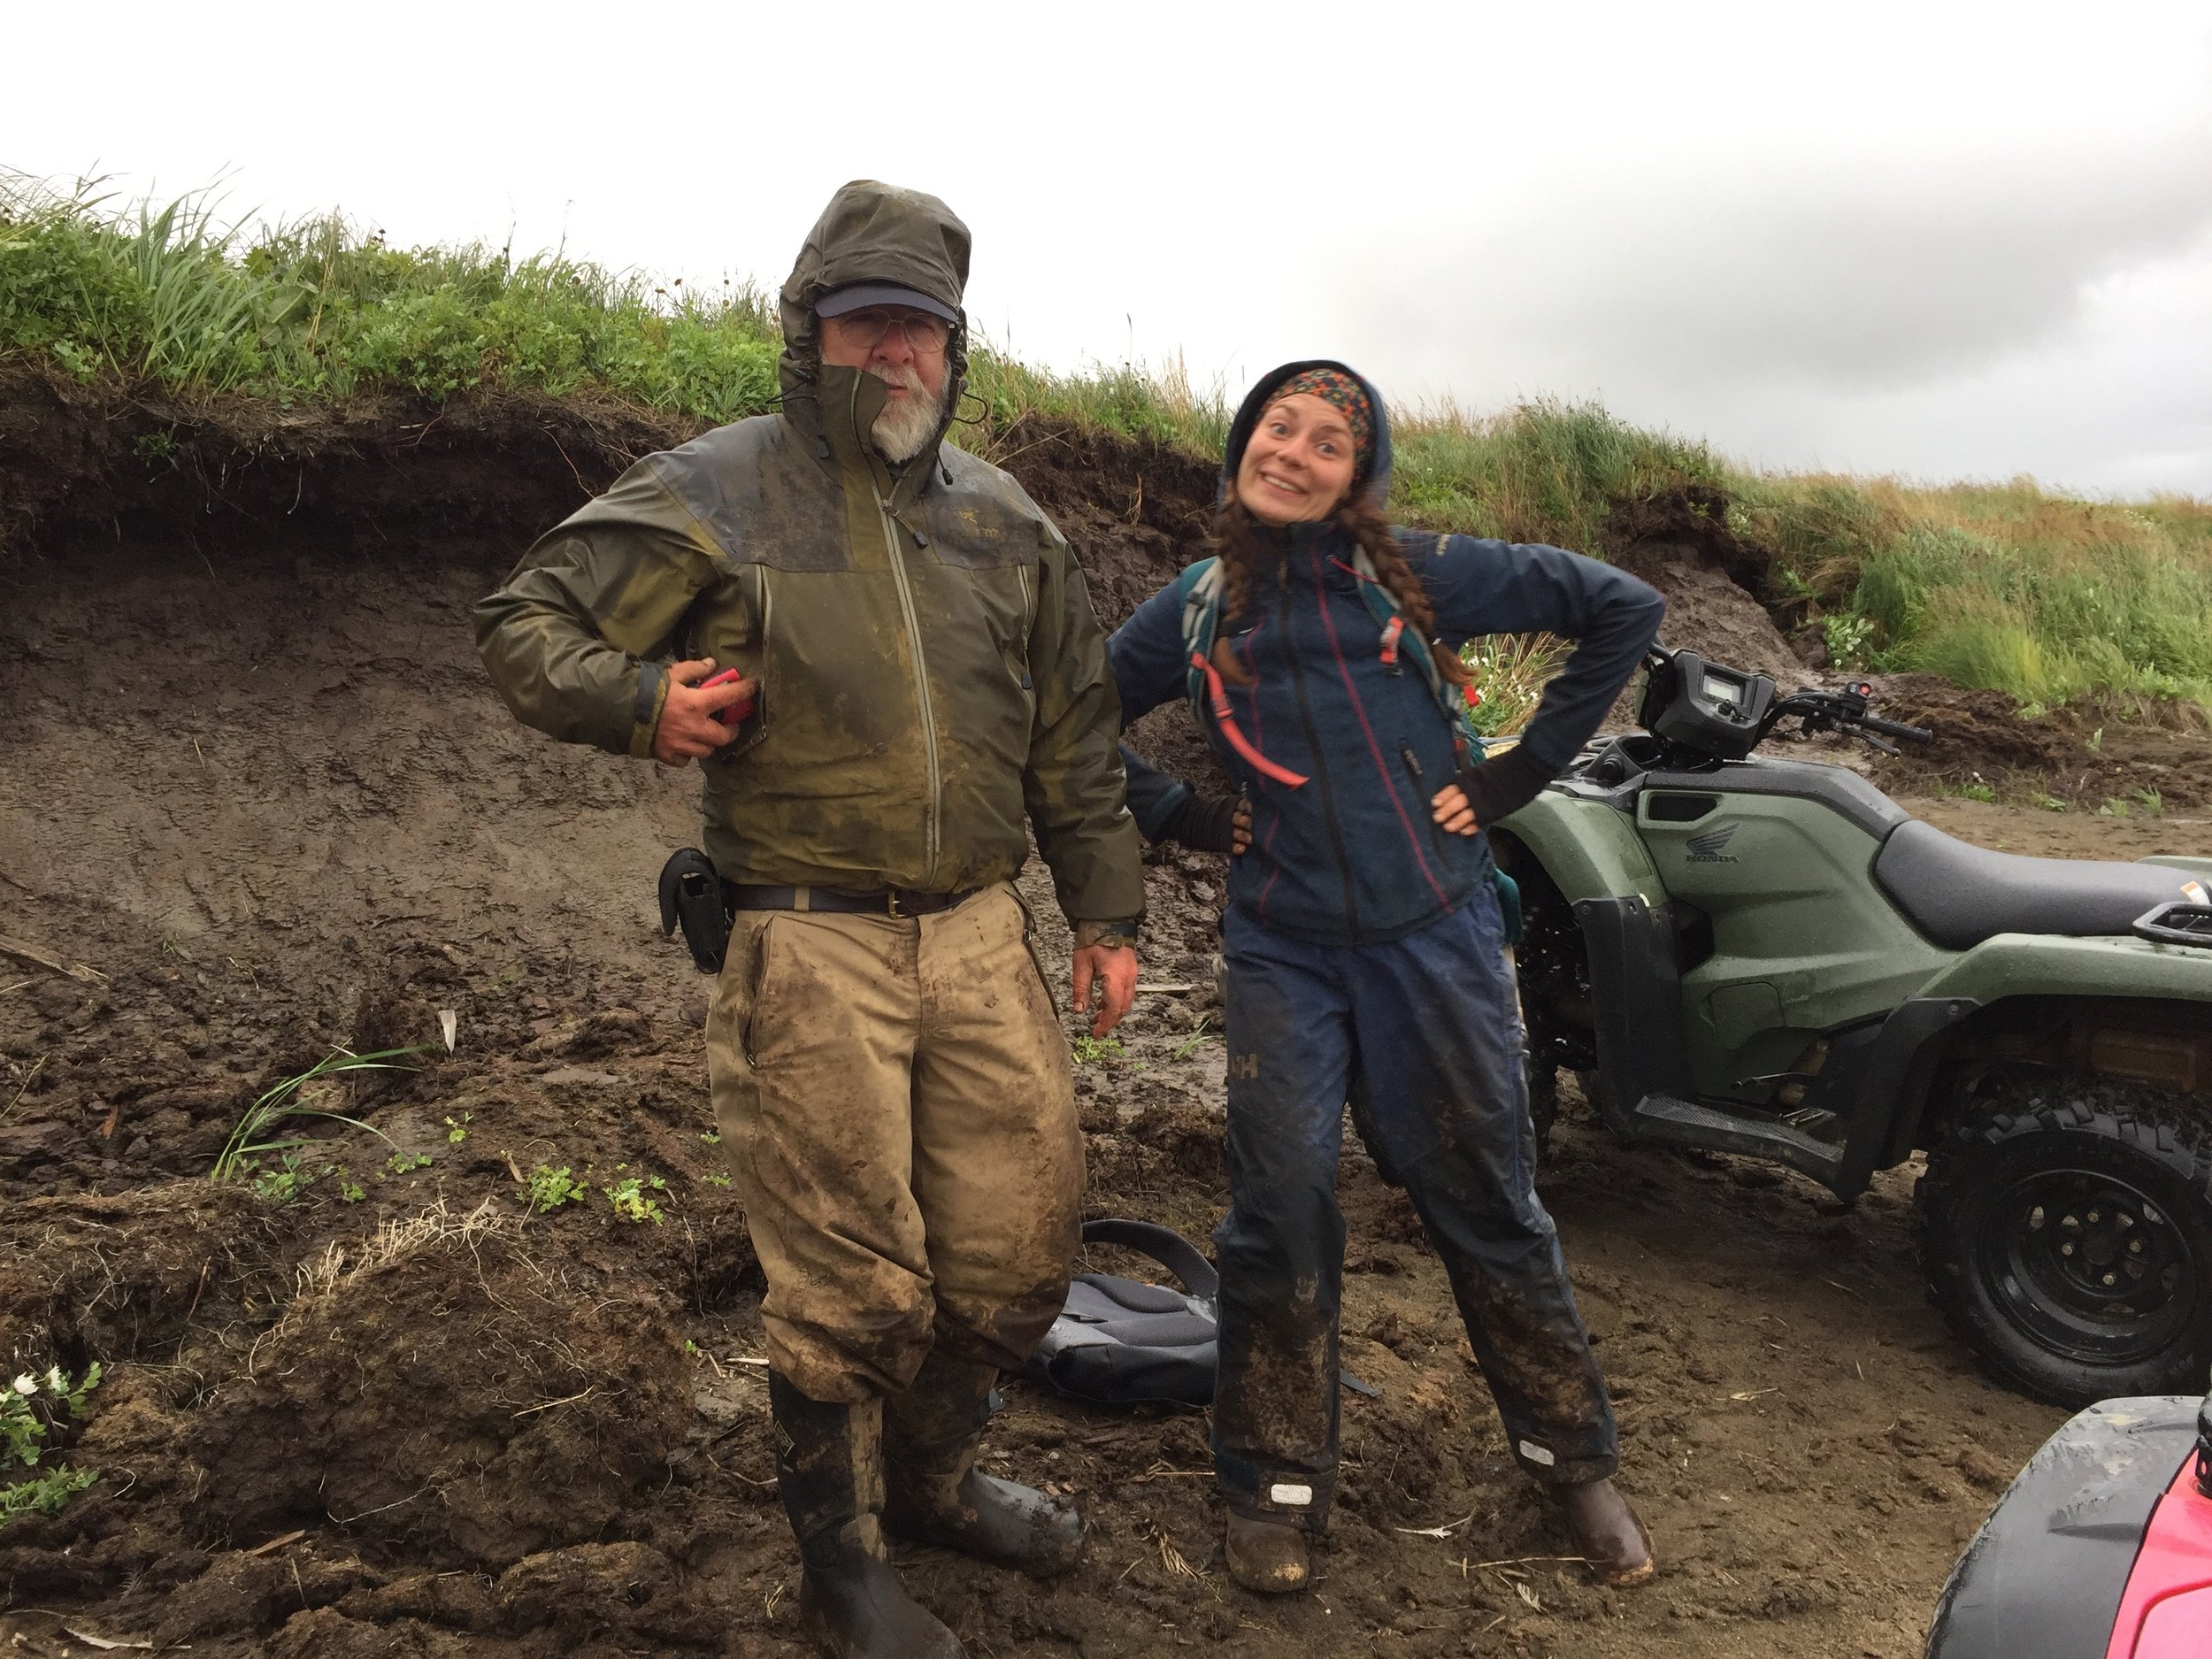 Rick Knecht and Anna Mossolova packing up to head out after a long days work in the wind, rain, mud:).